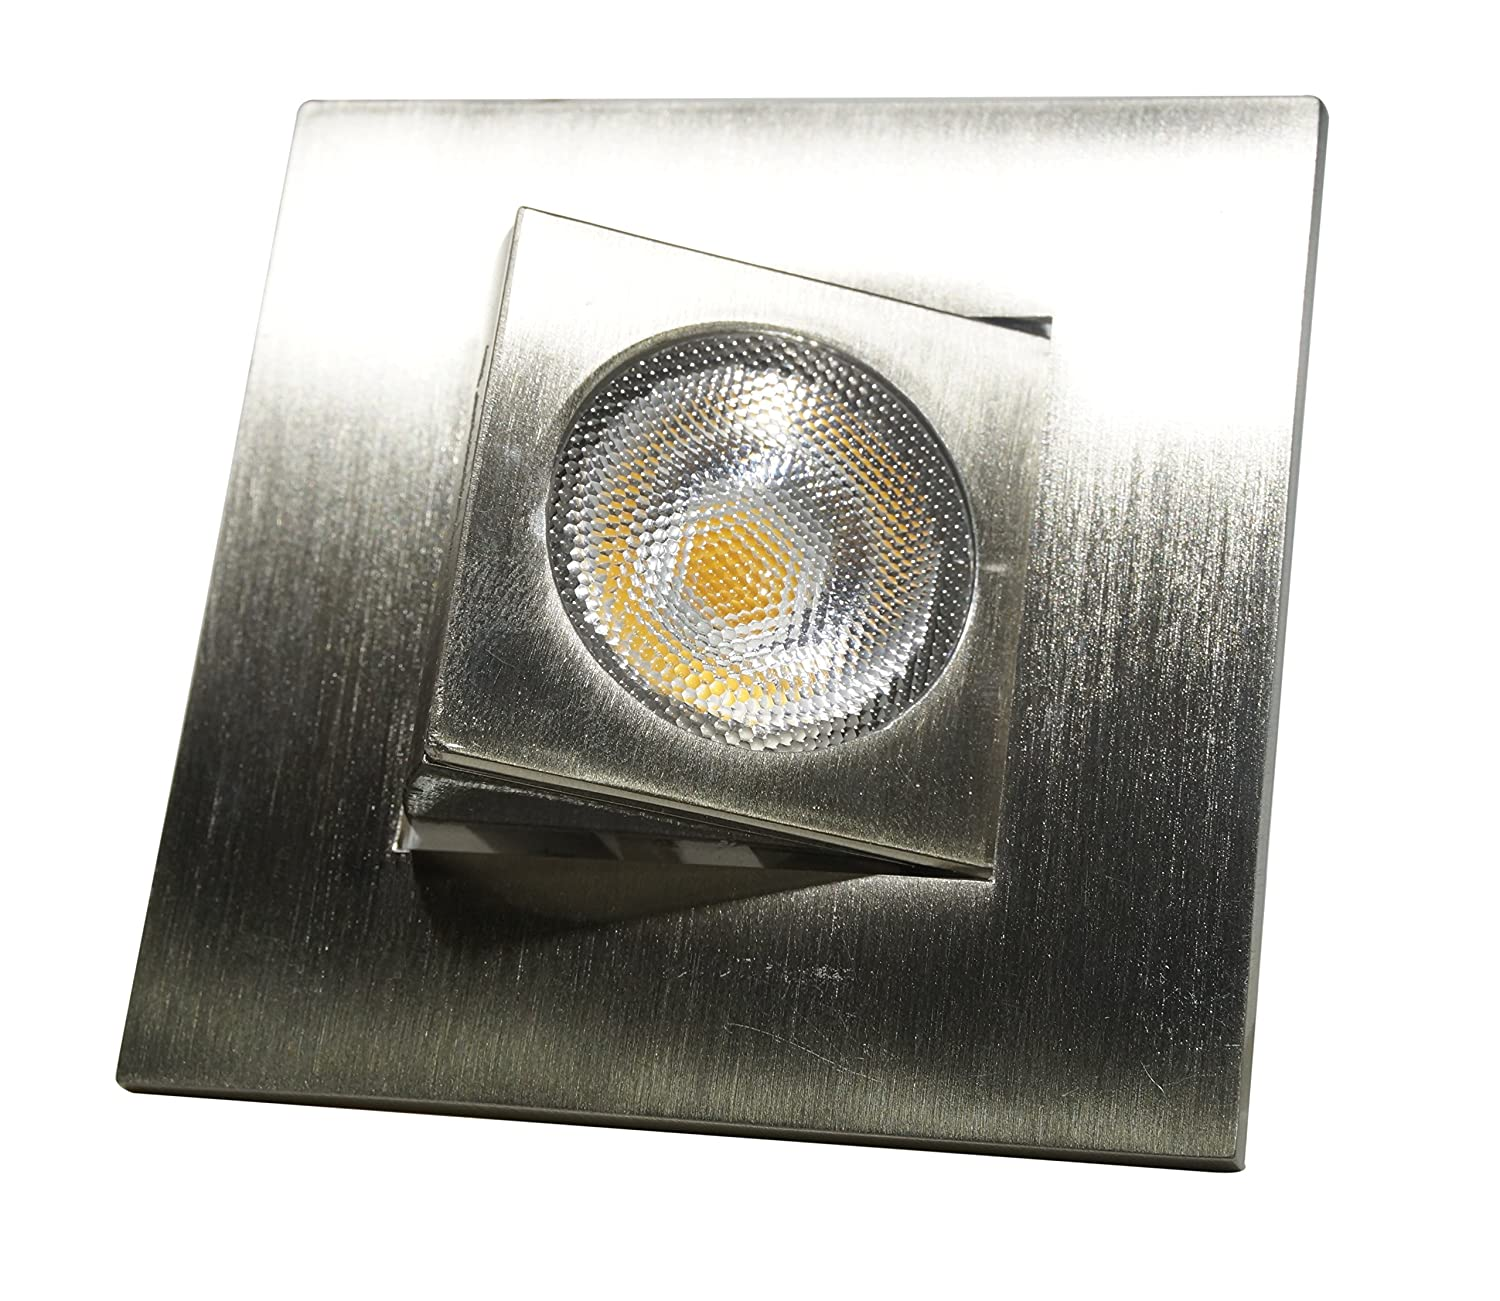 Oil-Rubbed Bronze DQR2-AA-10-120-3K-OB NICOR Lighting 2-Inch Adjustable Square Eyeball 3000K LED Downlight Fixture for 2-Inch Recessed Housings